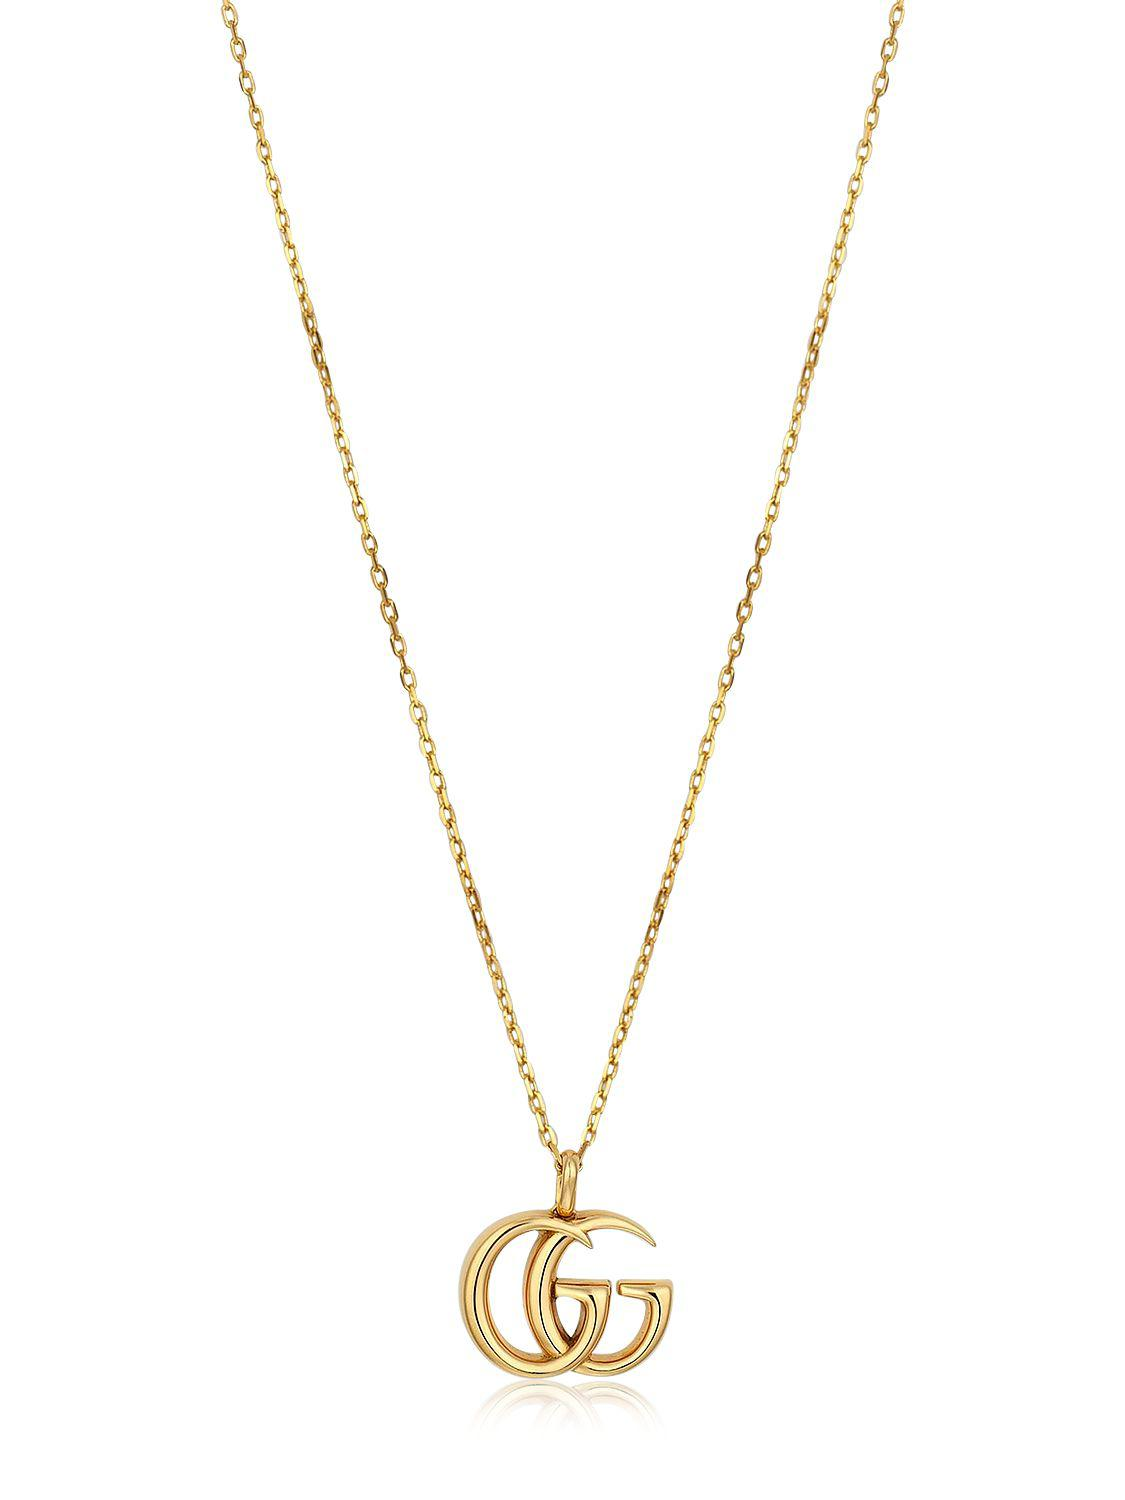 Gucci crystal Double G necklace - Metallic 85YvpgGaT